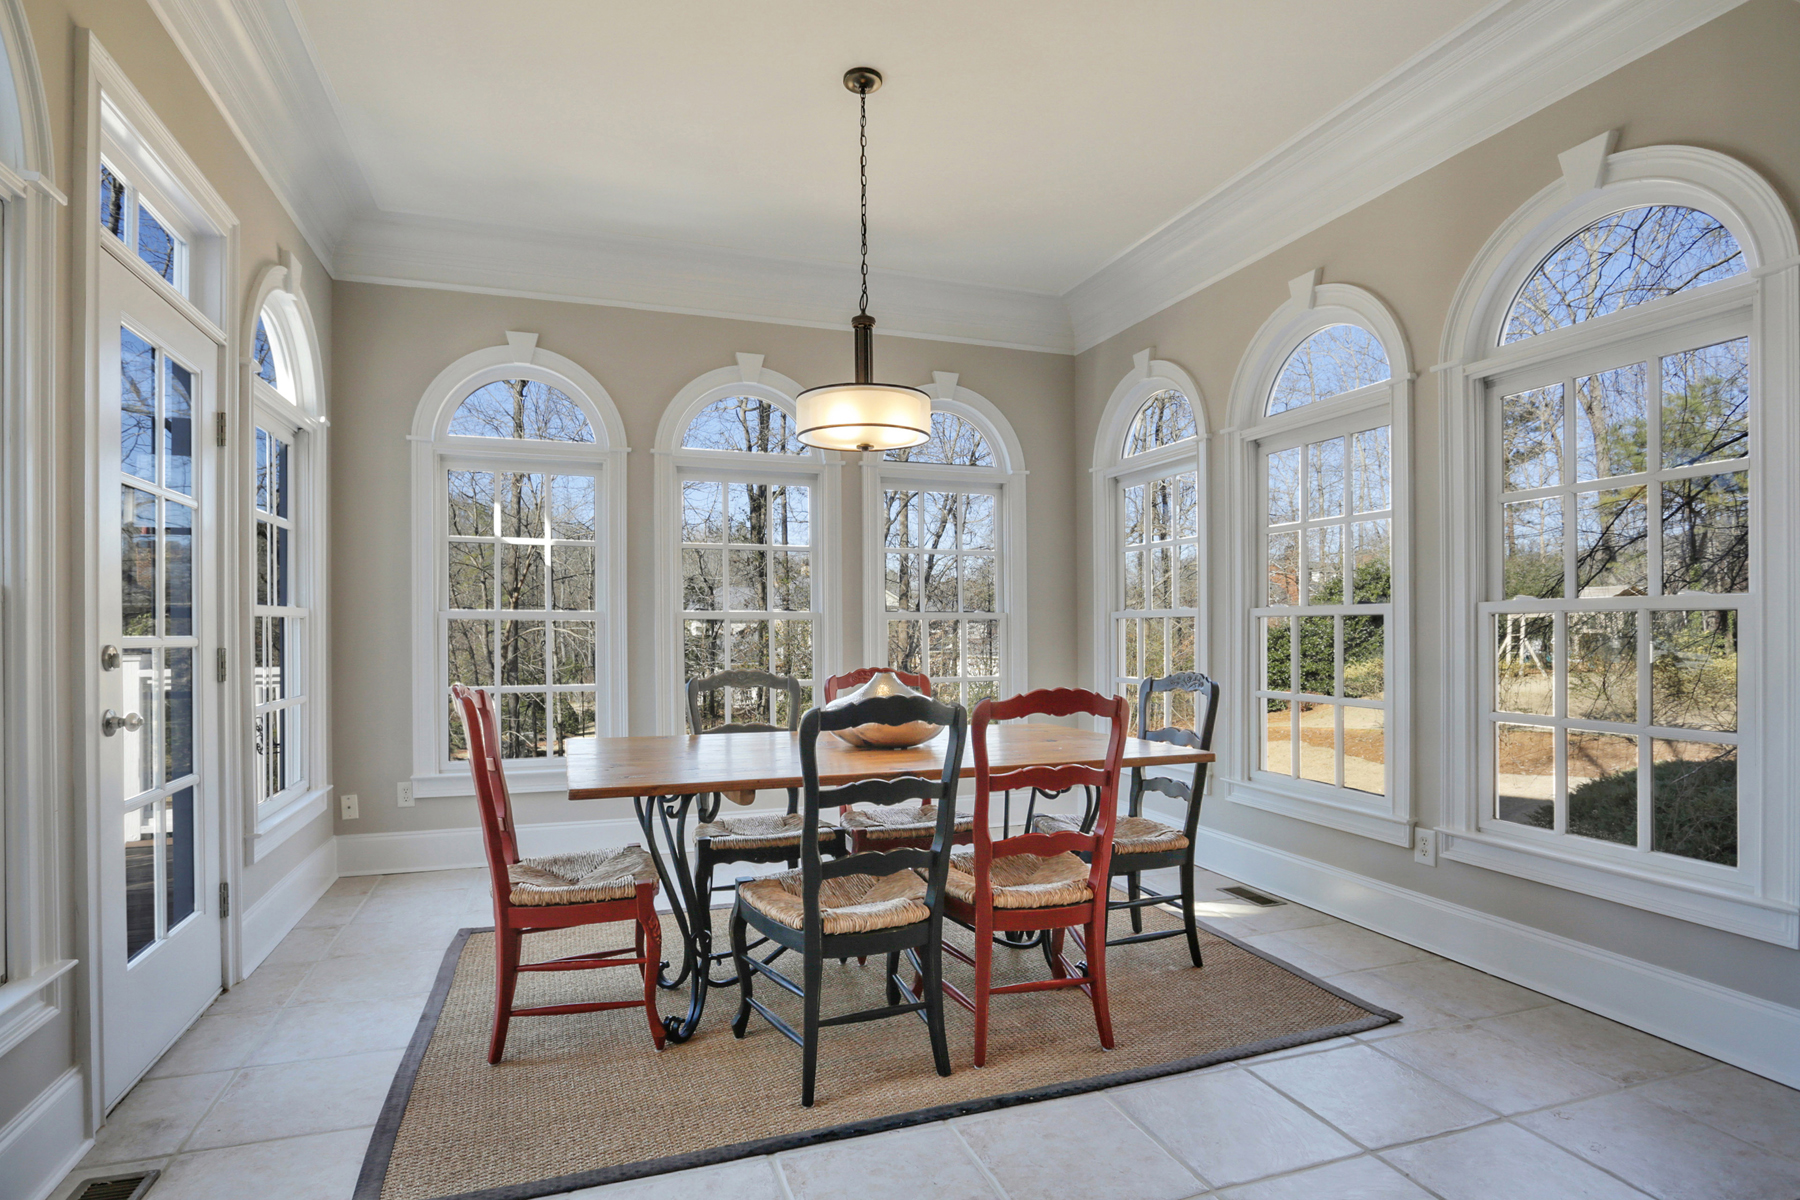 Additional photo for property listing at Cape Cod Home In Ellard 8111 Lawnview Alpharetta, Γεωργια 30022 Ηνωμενεσ Πολιτειεσ